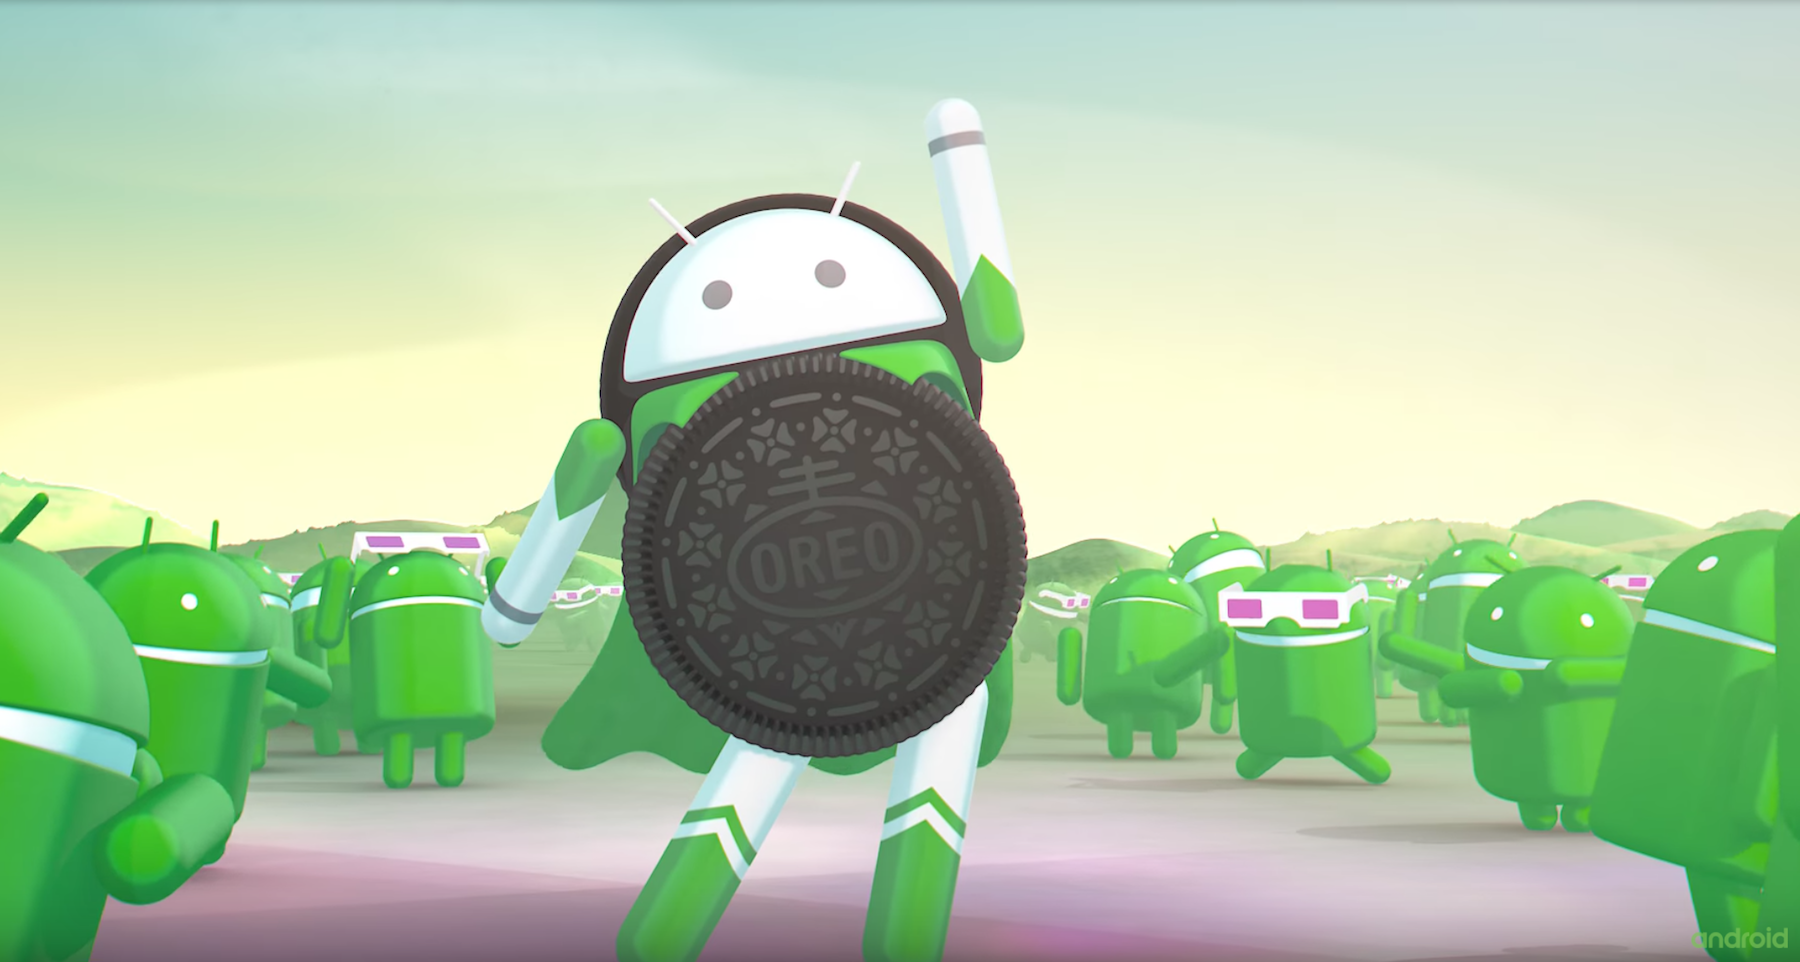 Android Oreo Adds Linux Kernel Requirements and New